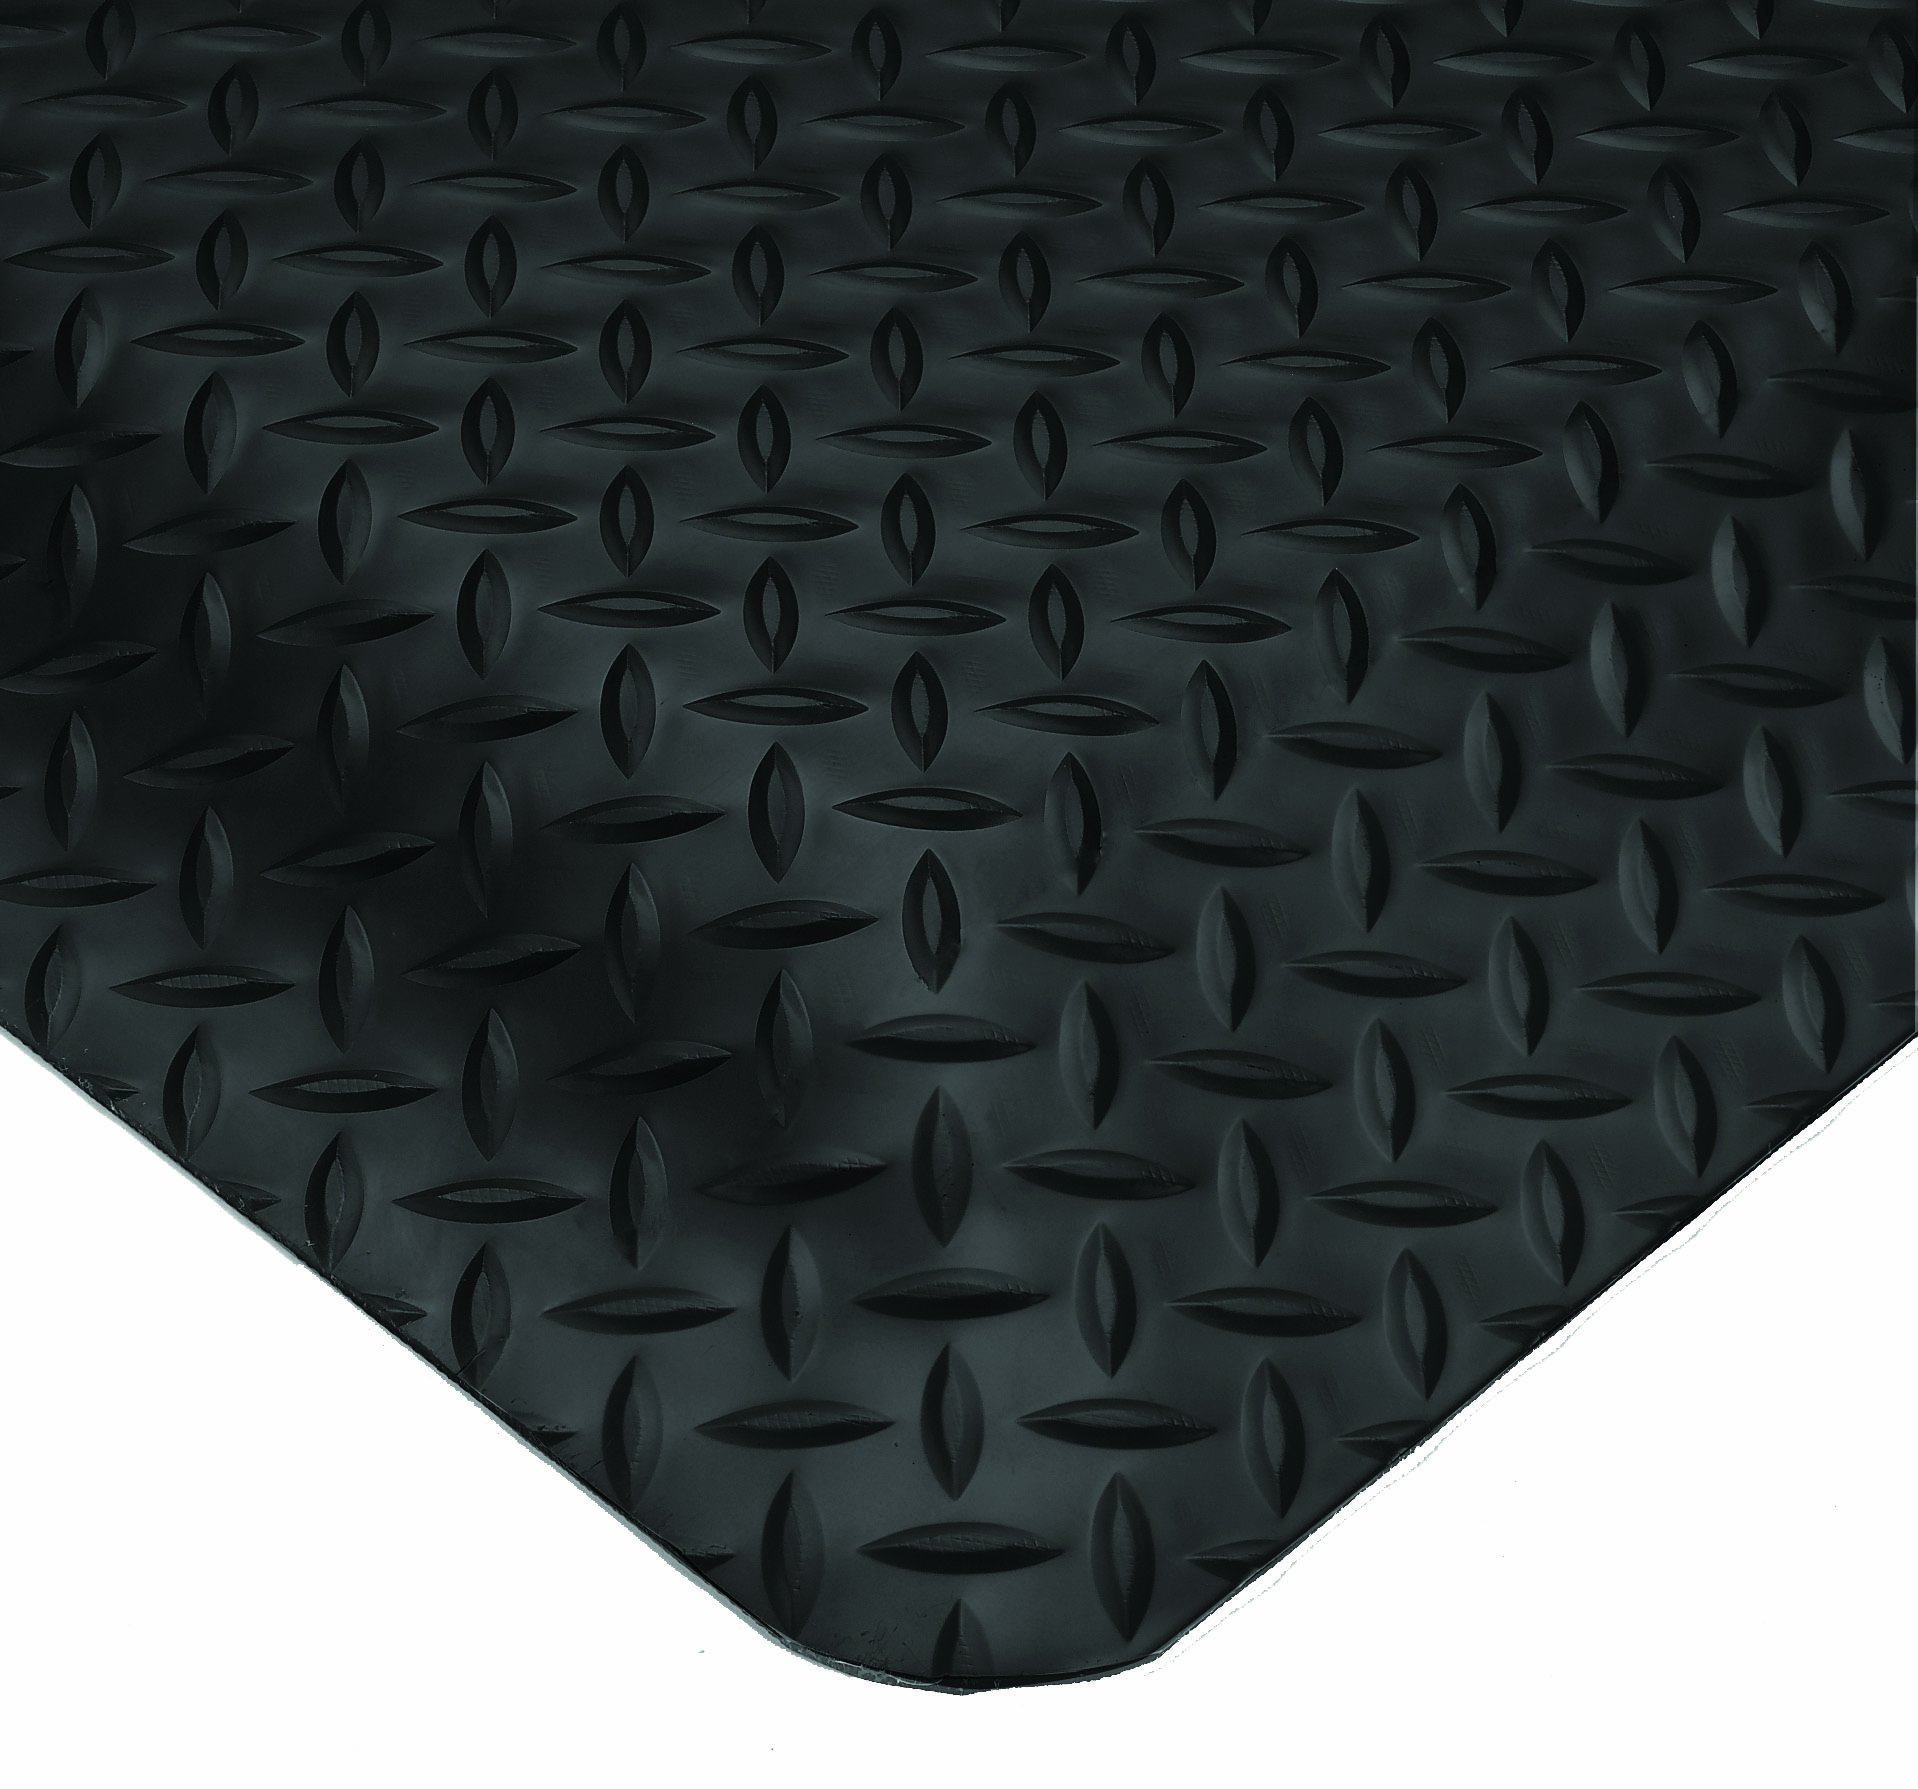 Wearwell 414.1516x2x3BK Diamond-Plate SpongeCote UltraSoft Mat, 2' Width x 3' Length x 15/16'''' Thickness, Black by Wearwell